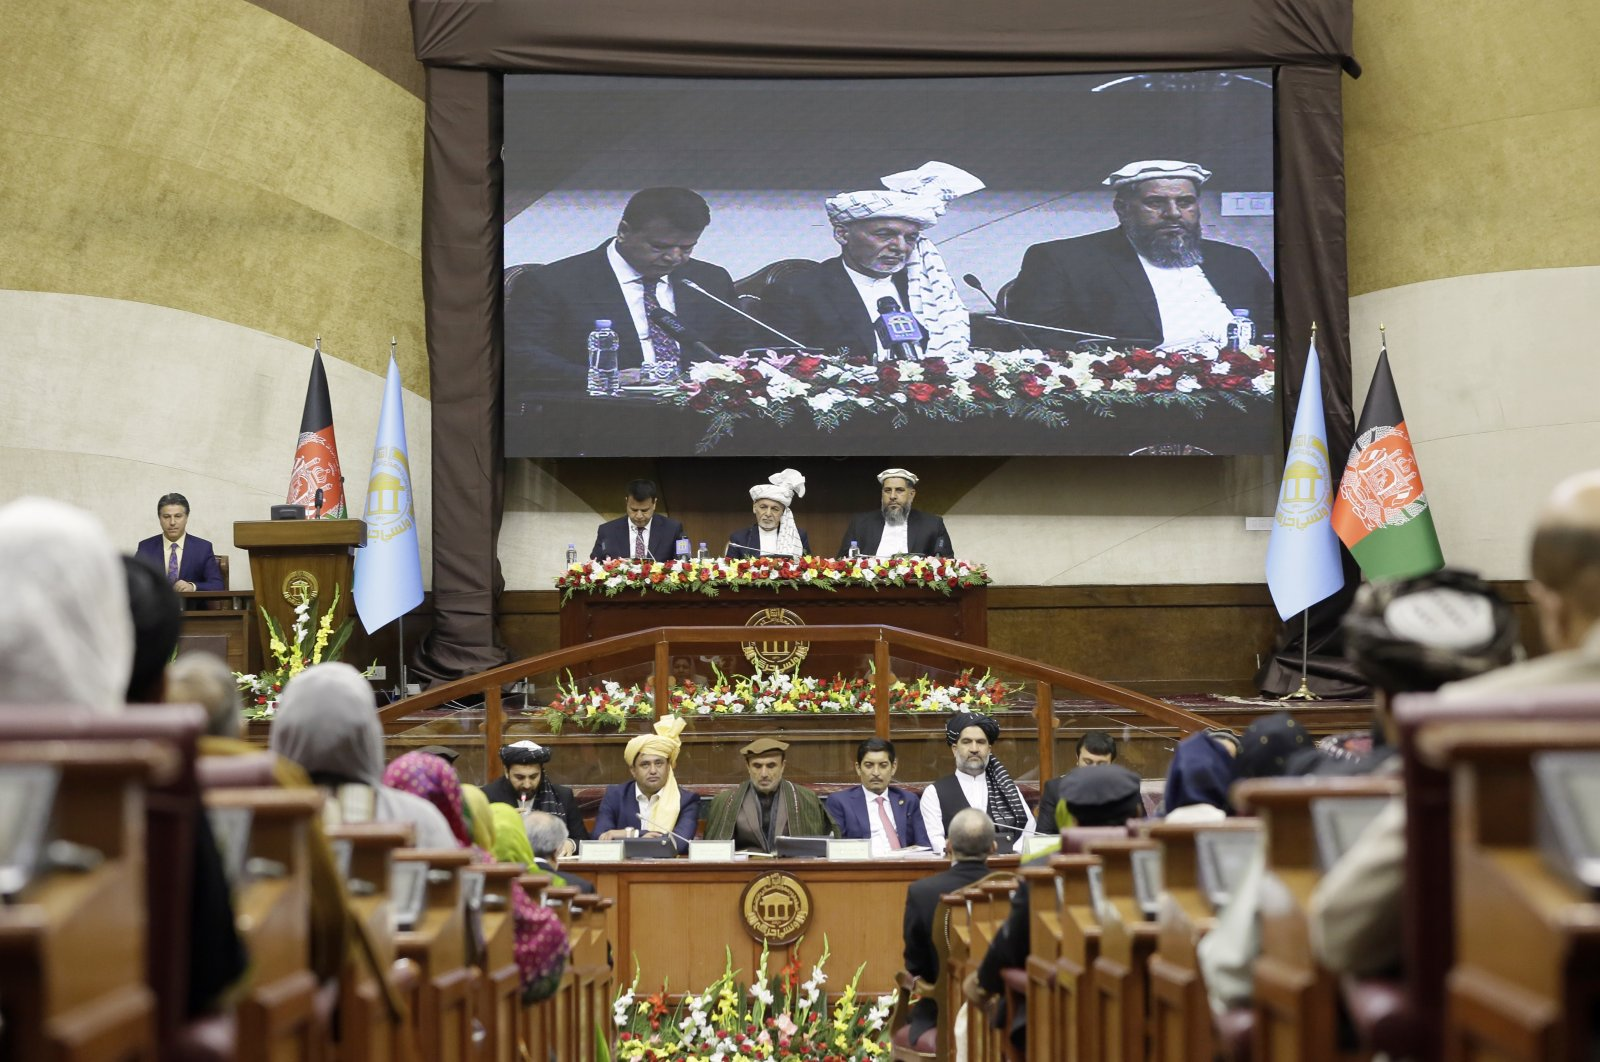 Afghan President Ashraf Ghani, center top, attends the opening ceremony of the new legislative session of the Parliament in Kabul, Afghanistan, Saturday, March 6, 2021. (AP Photo)